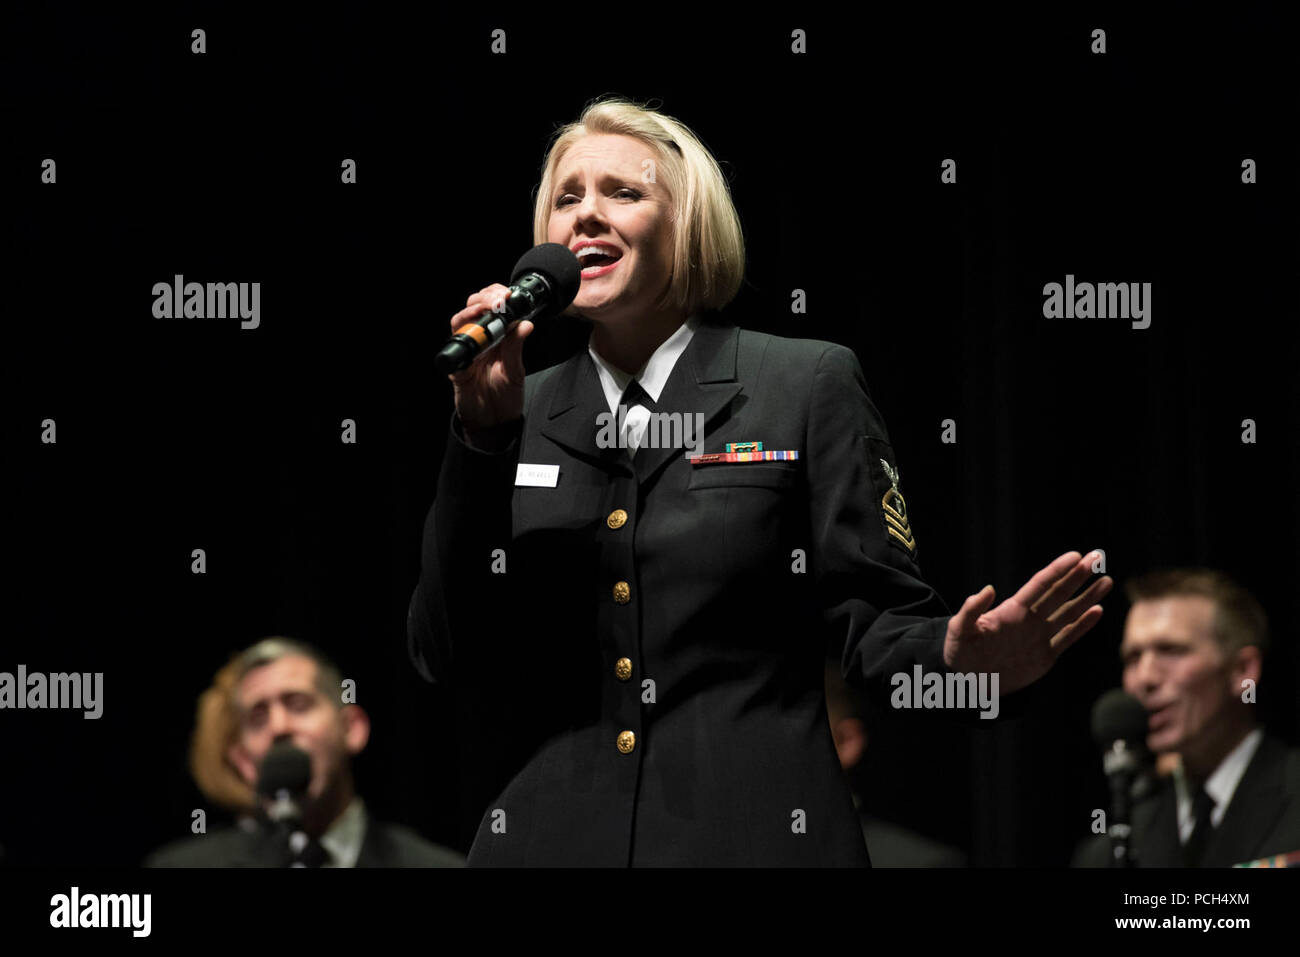 AKRON, Ohio (April 19 2017) Chief Musician Beth Revell sings a solo during a performance at the University of Akron. The Sea Chanters are on a 21-day tour of the midwestern United States connecting communities across the United States to their Navy. - Stock Image